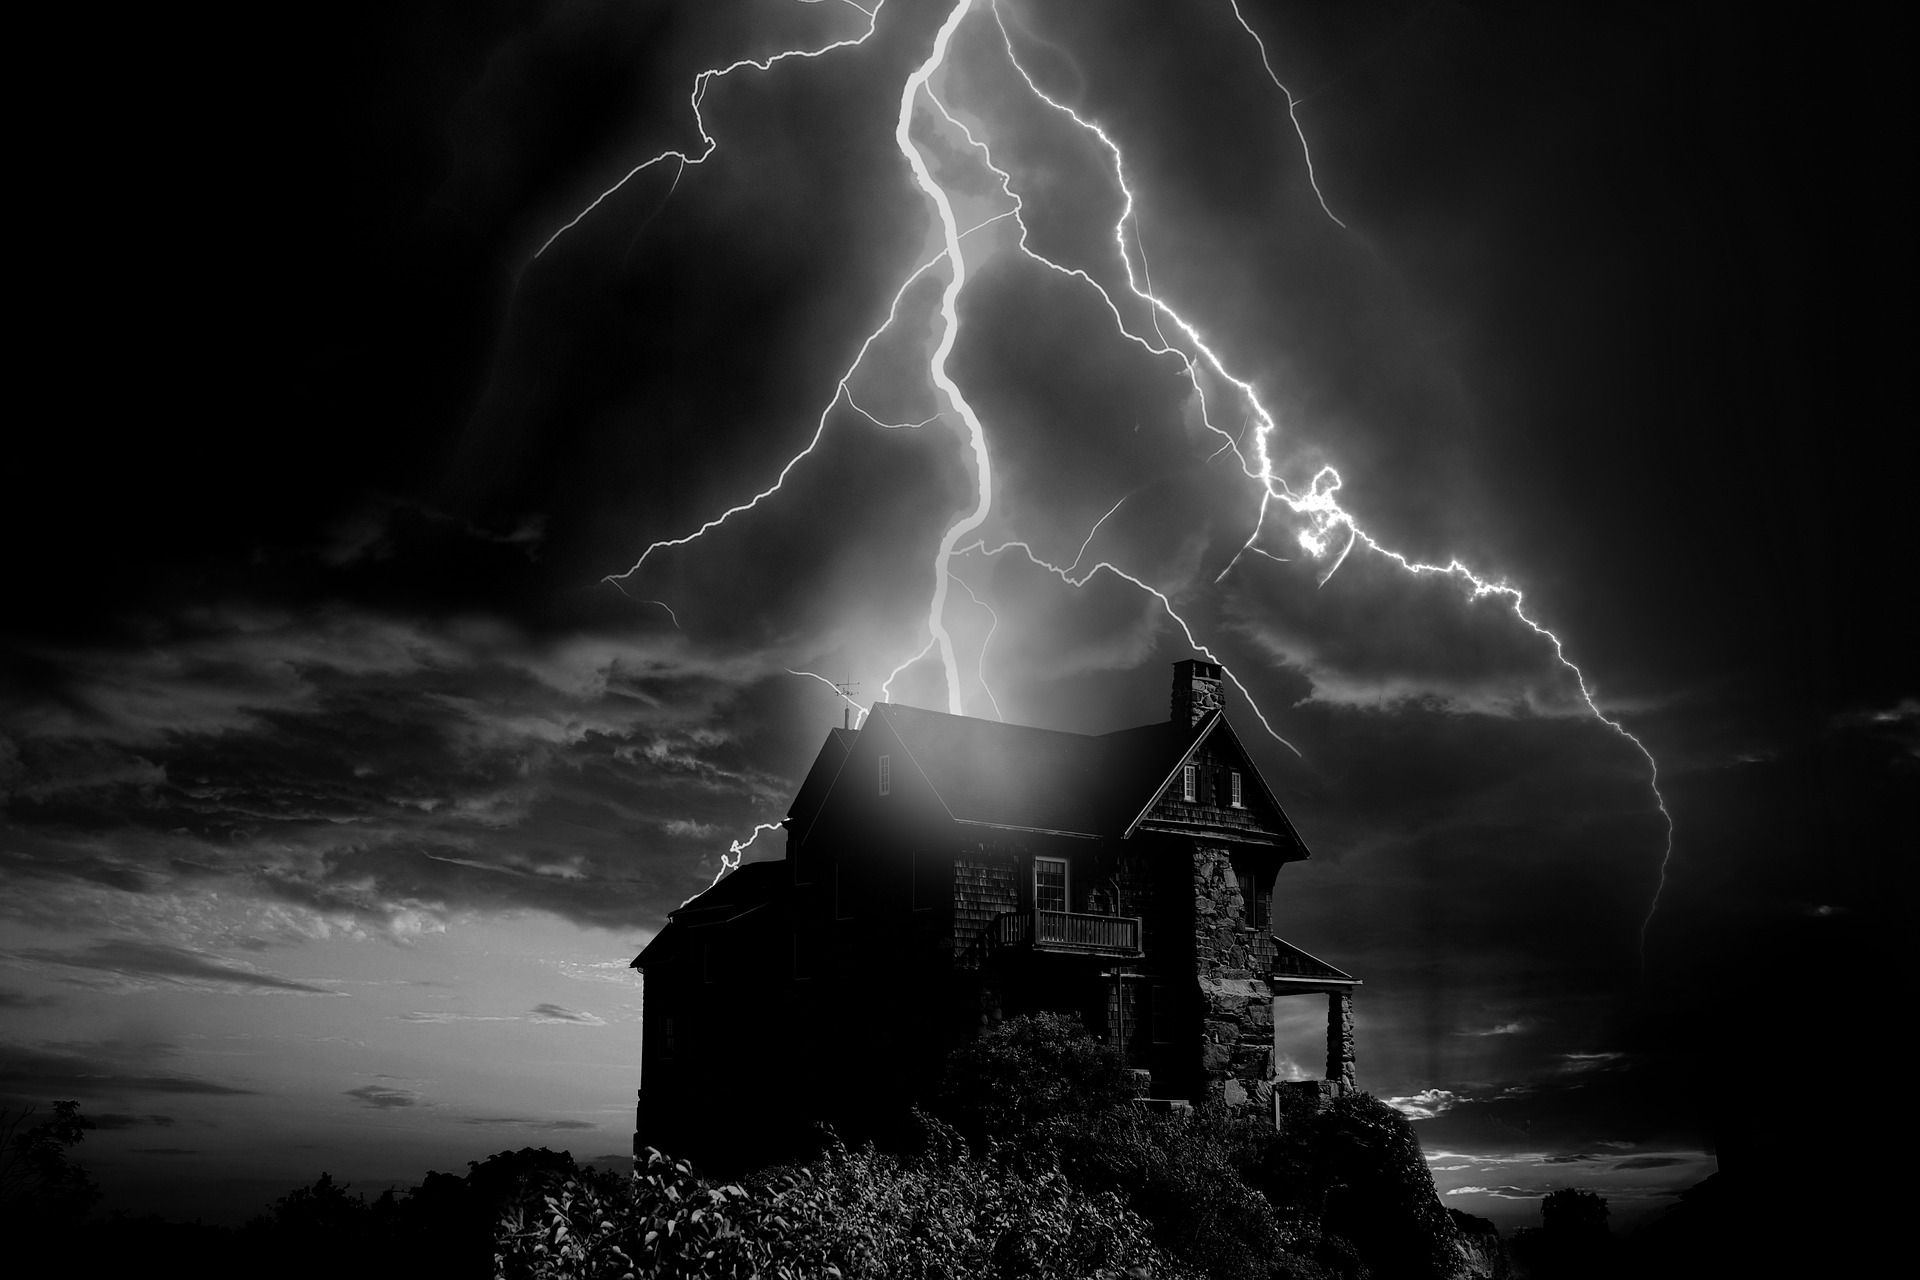 , Lightning protection for the house, Best Garden, Home And DIY Tips